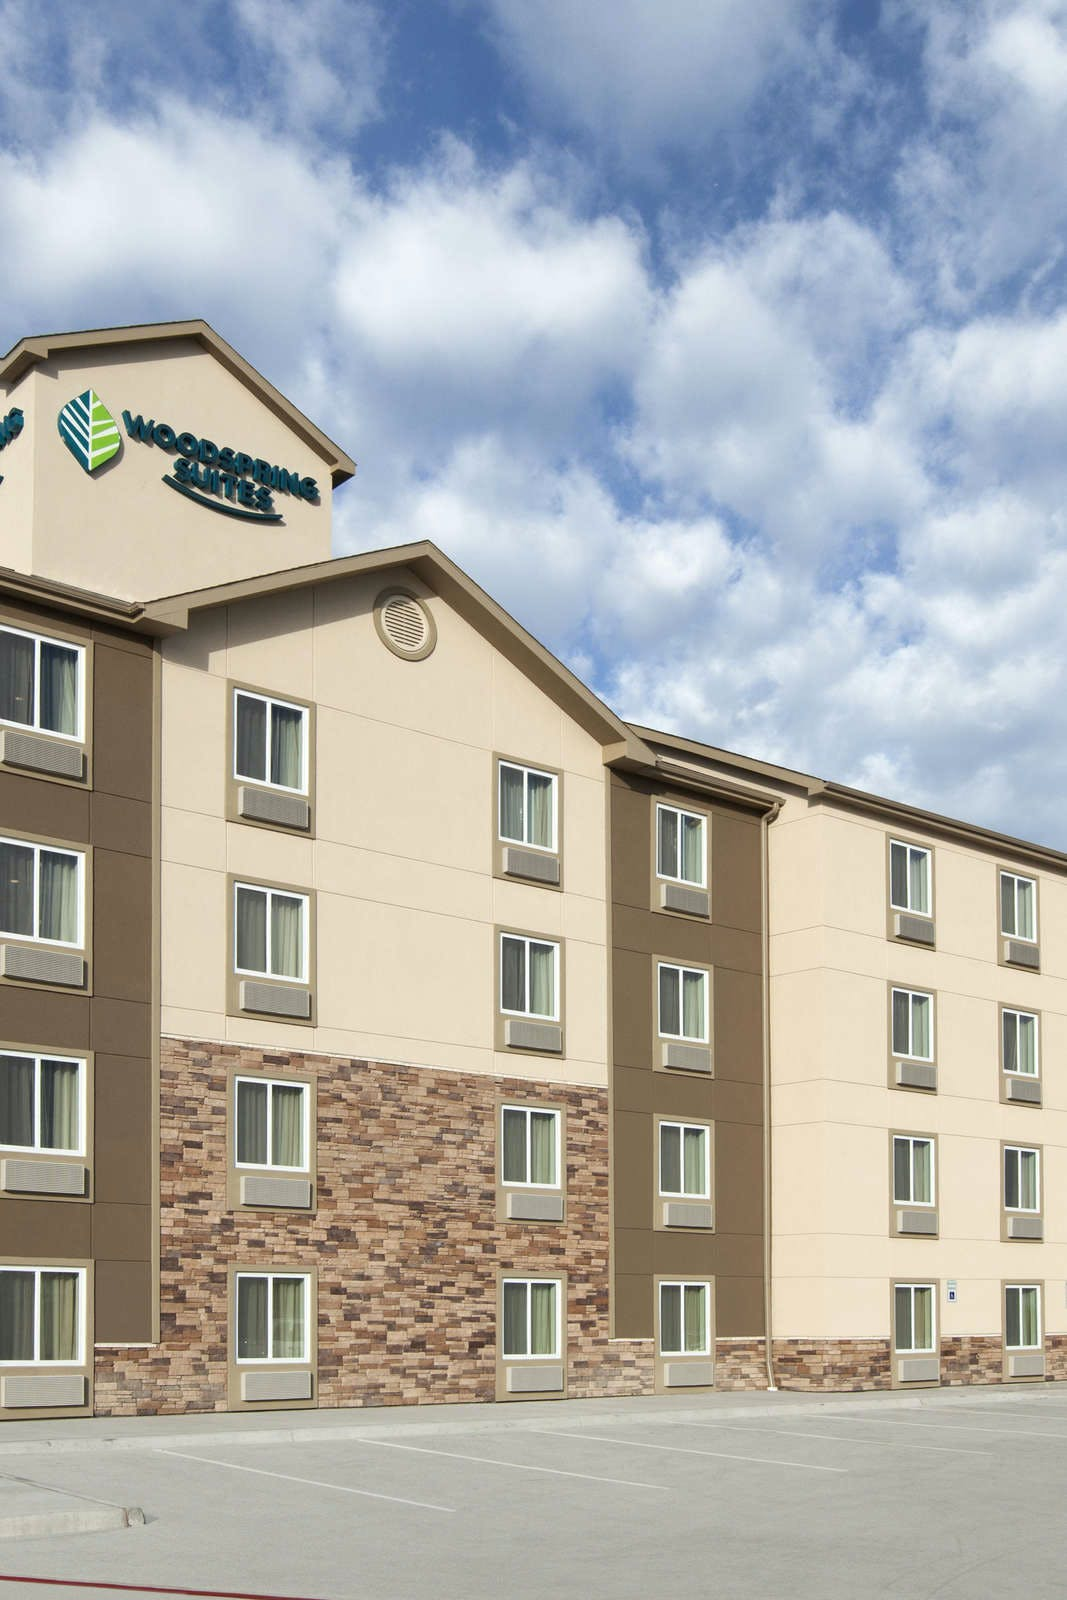 WoodSpring Suites Signature North Dallas